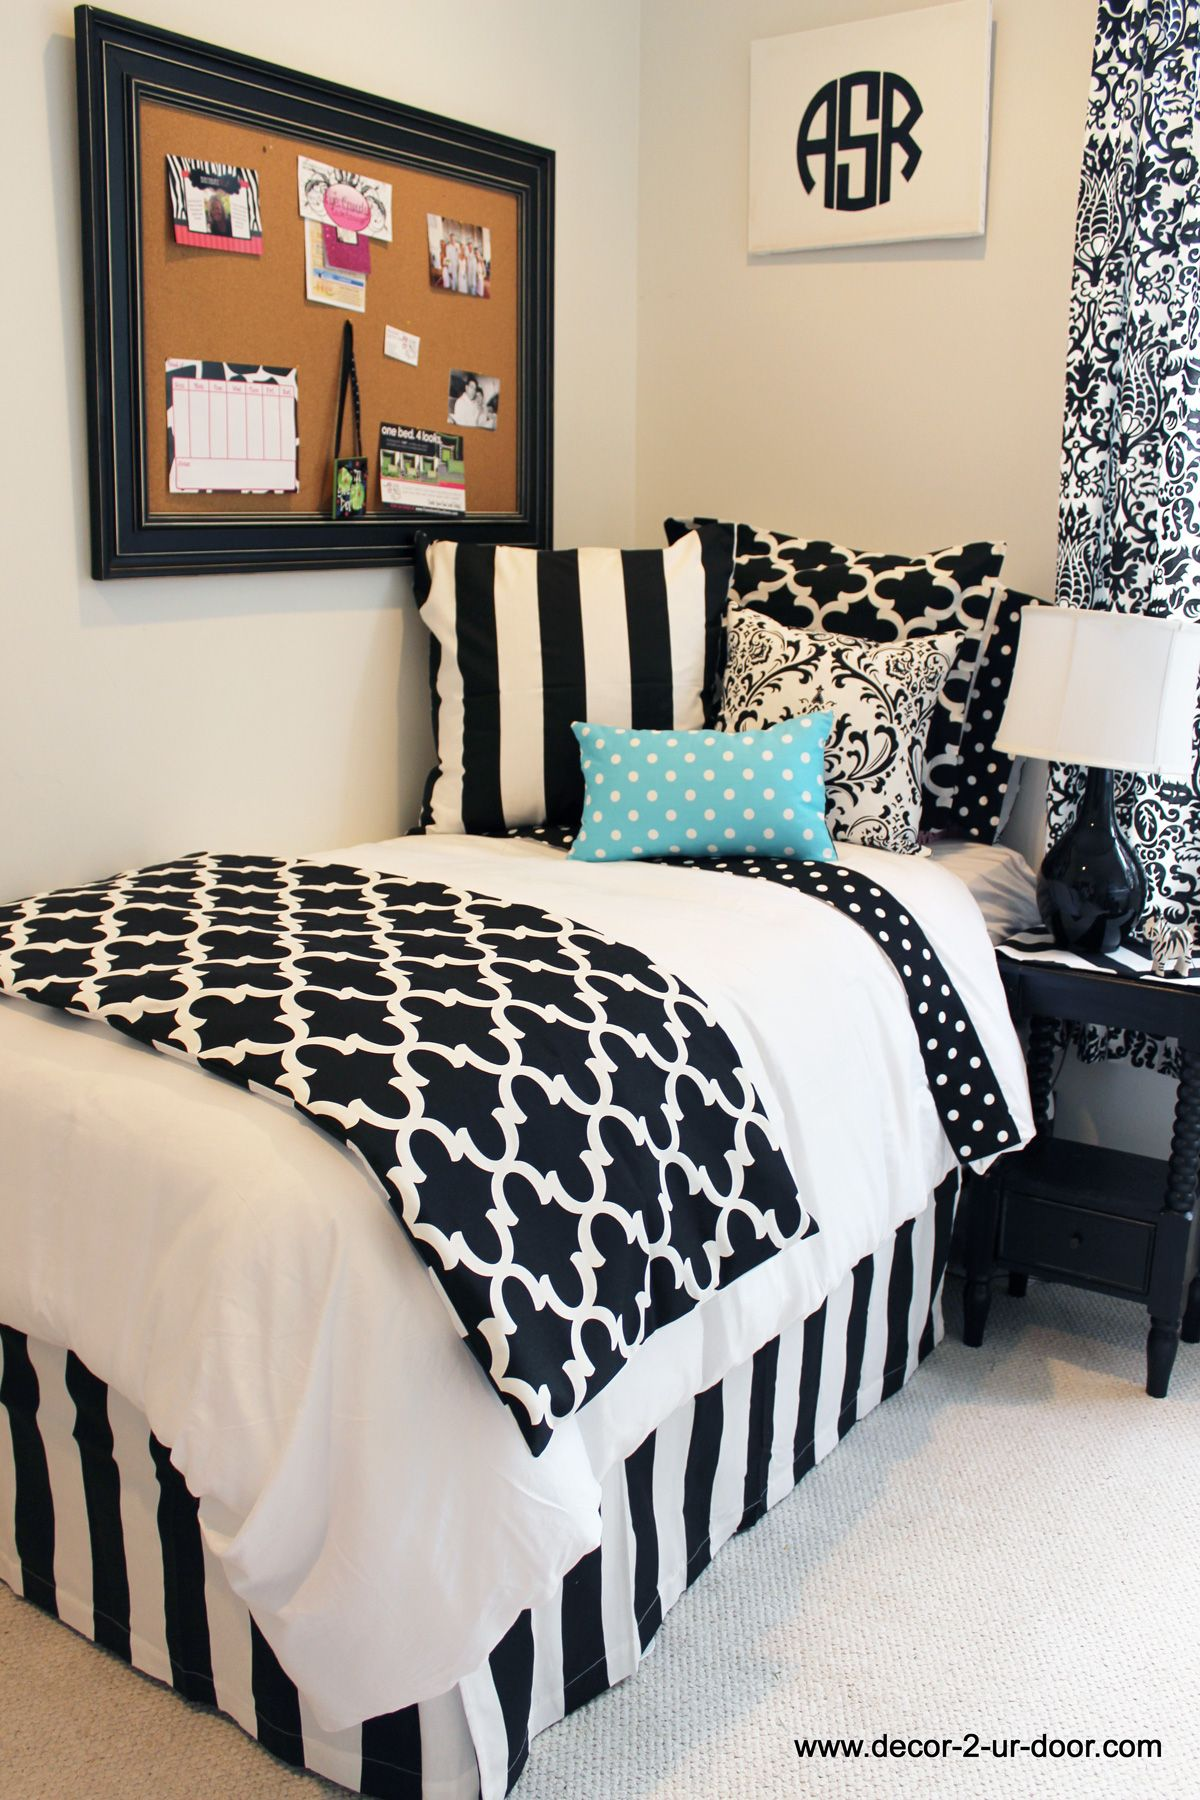 Inspiration Gallery for Bedroom Decor & Bedding Dorm